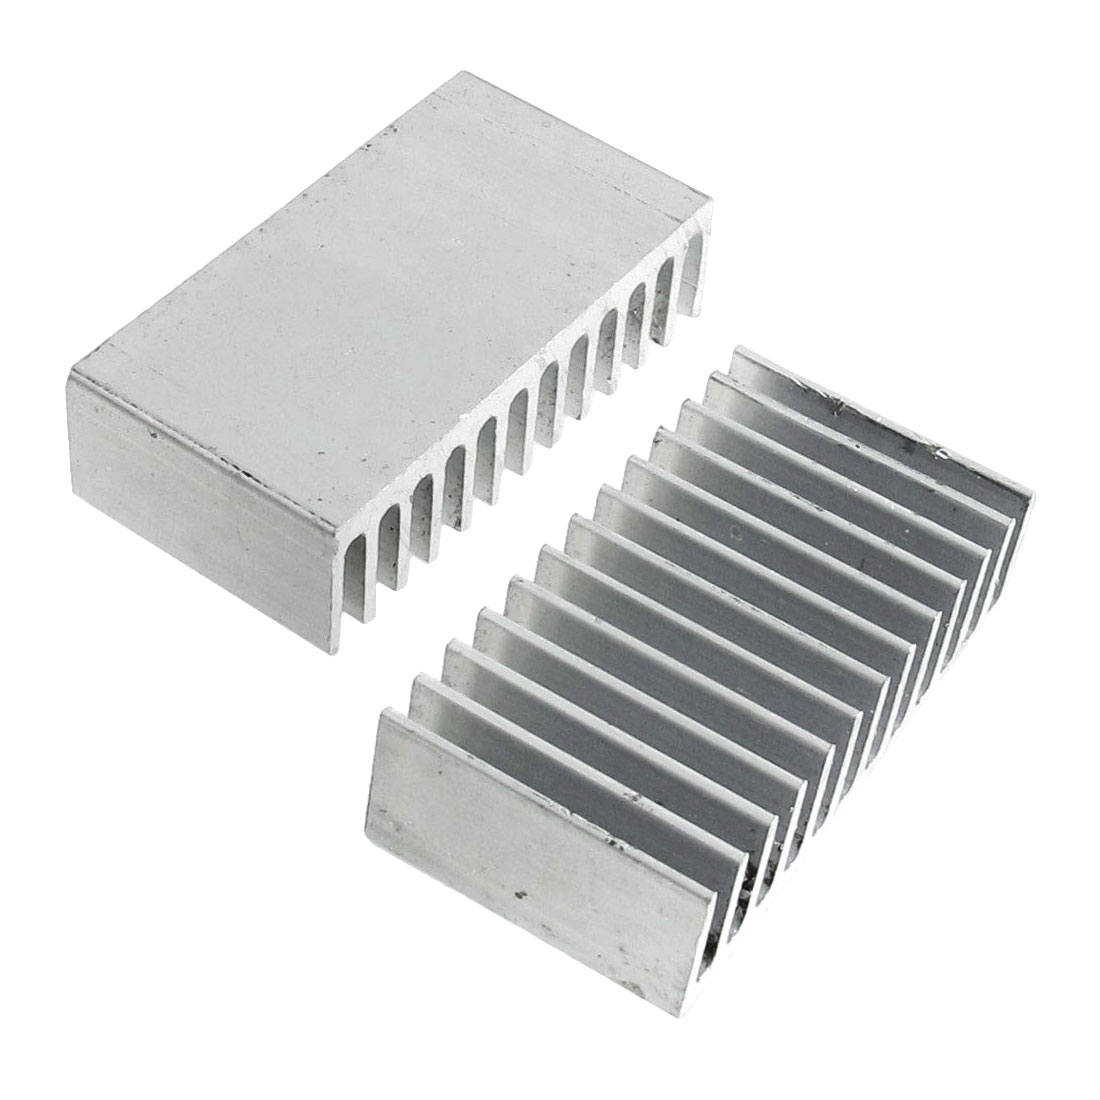 40mm x 11mm x 21mm Heatsink Heat Dissipate Cooling Fin 2 Pcs